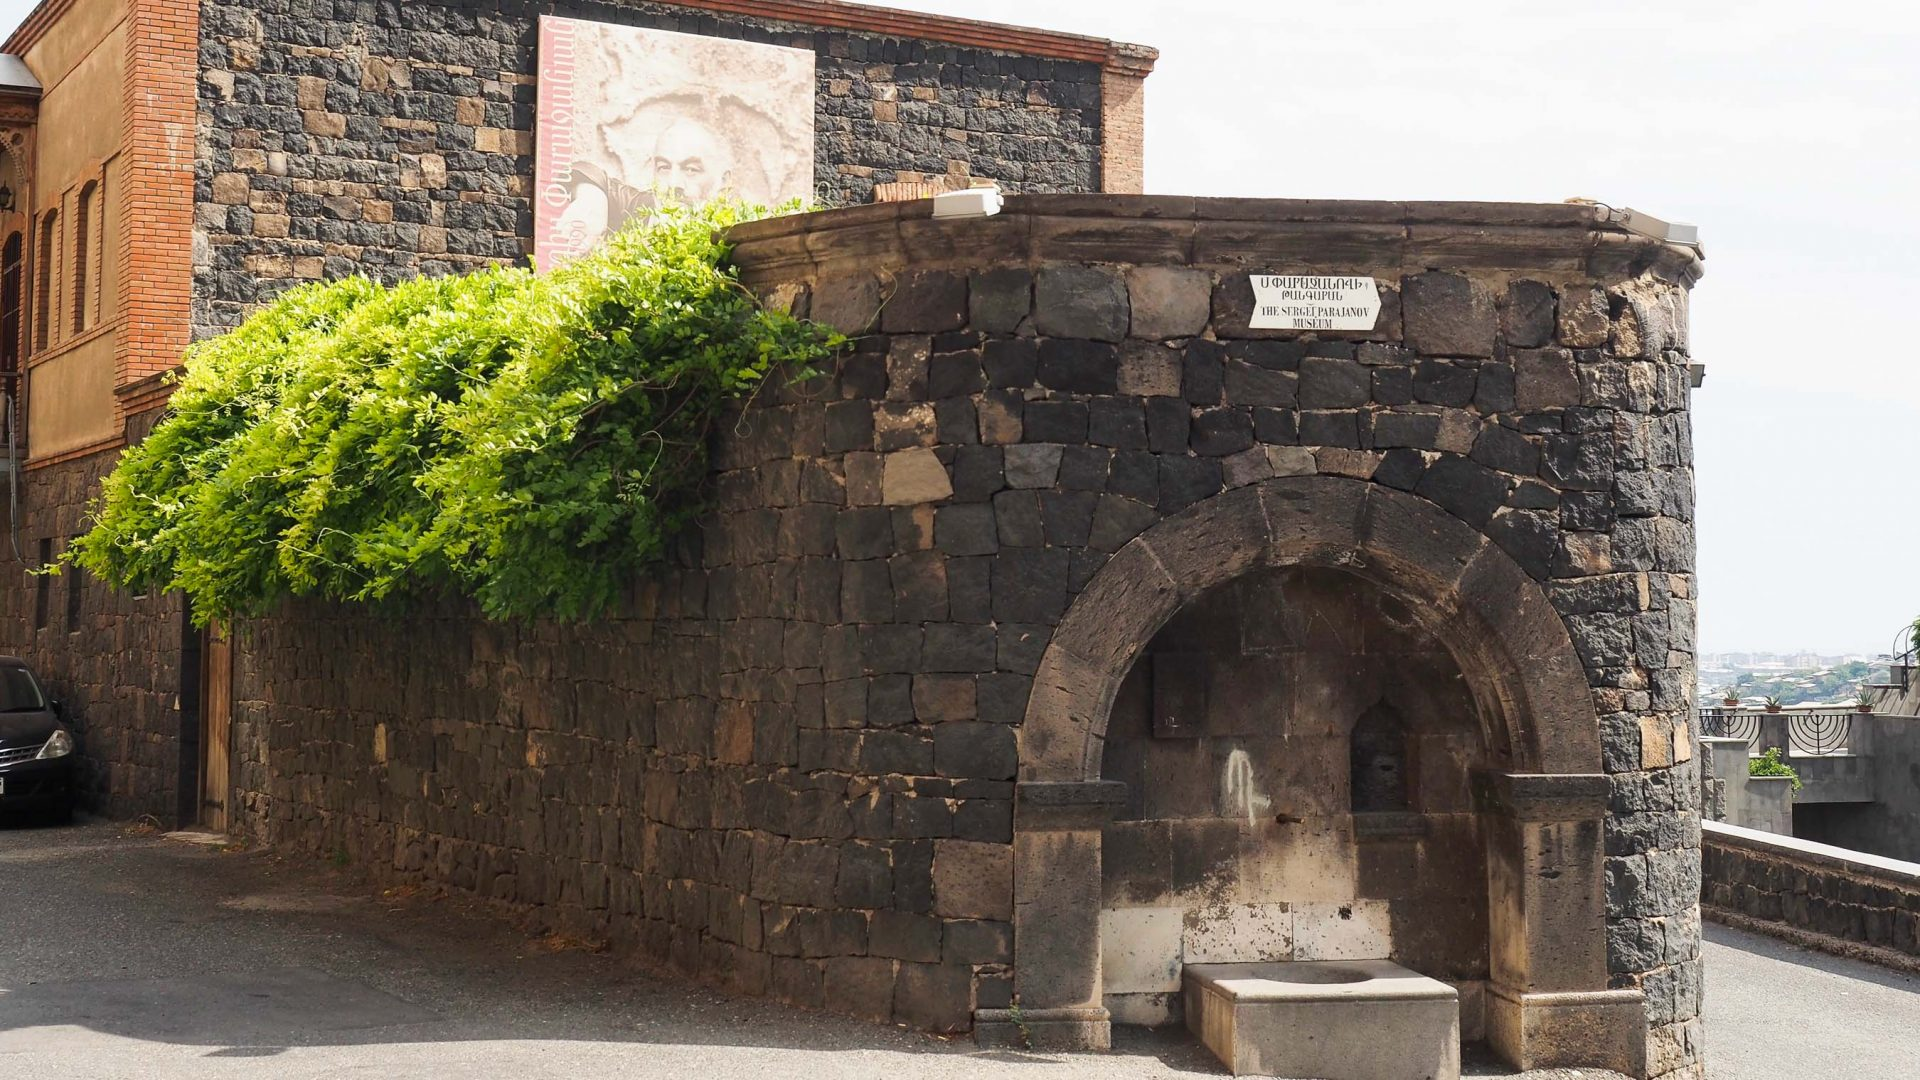 The stone walls of a museum.